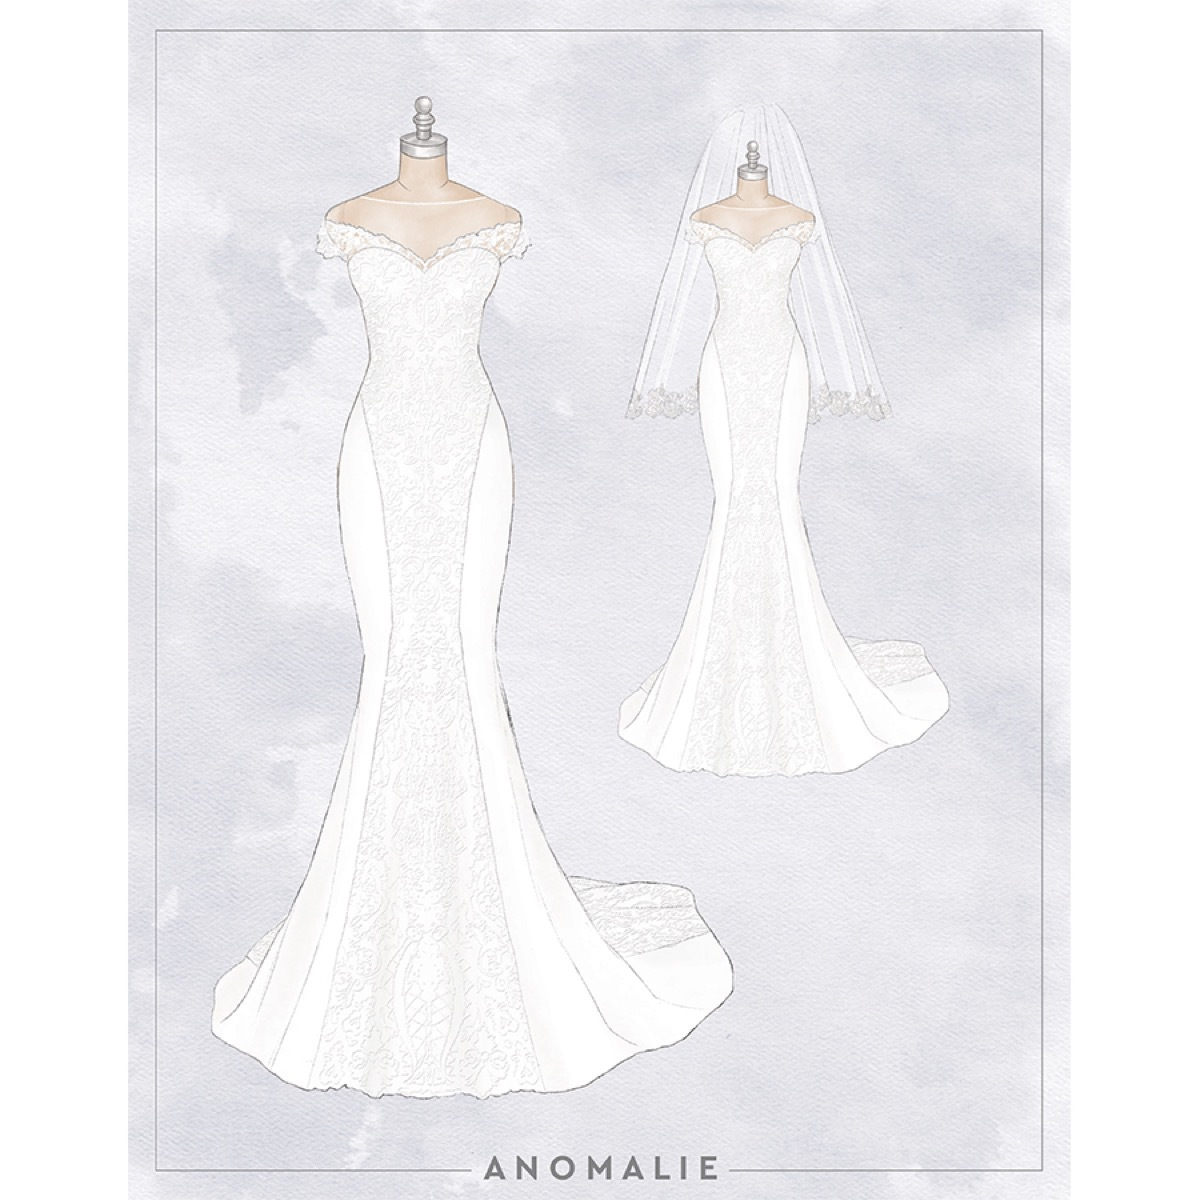 Anomalie custom designed wedding dress crepe with front lace panel and illusion neckline, short sleeve, Fiji destination wedding